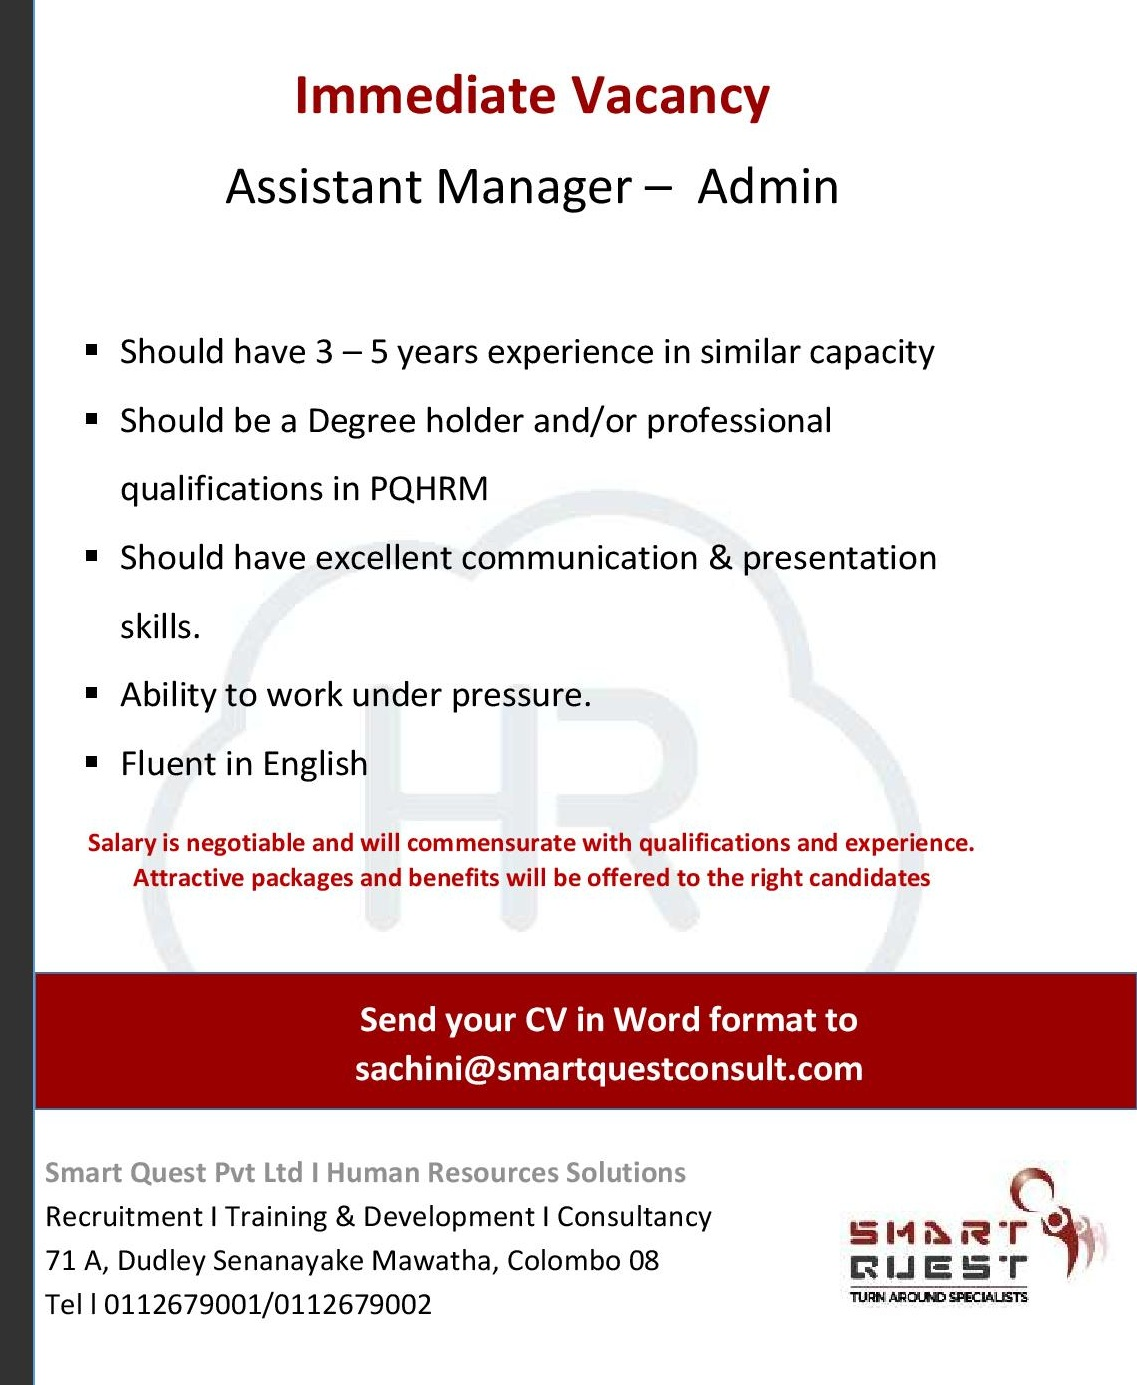 assistant manager admin female job vacancy in sri lanka should be a degree holder and or professional qualifications in pqhrm should have excellent communication presentation skills